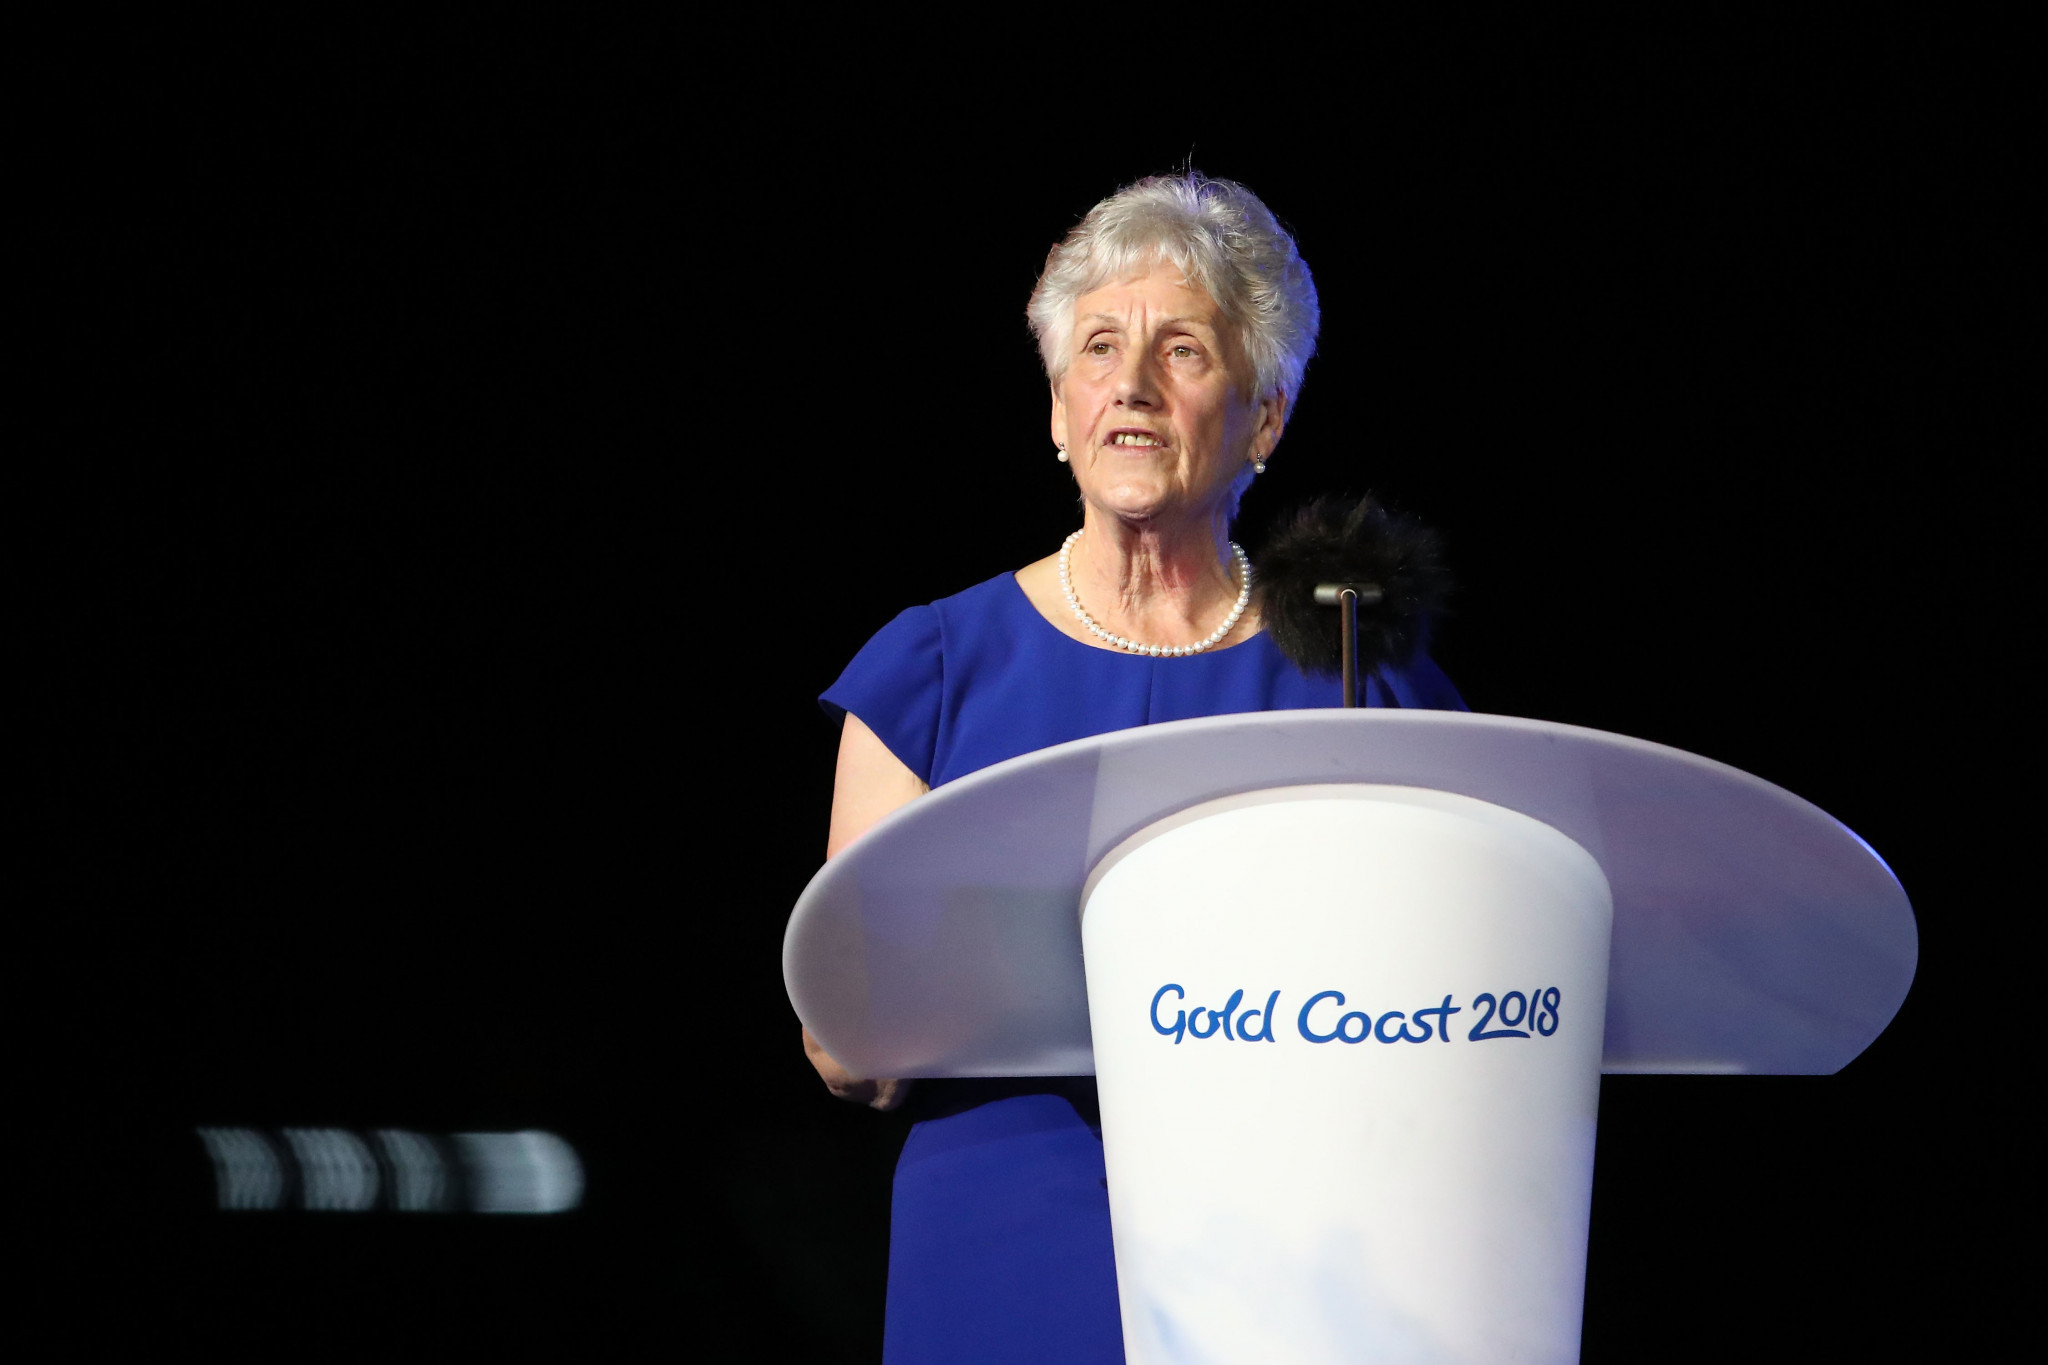 Commonwealth Games Federation President Dame Louise Martin is looking forward to returning to the Gold Coast ©Getty Images